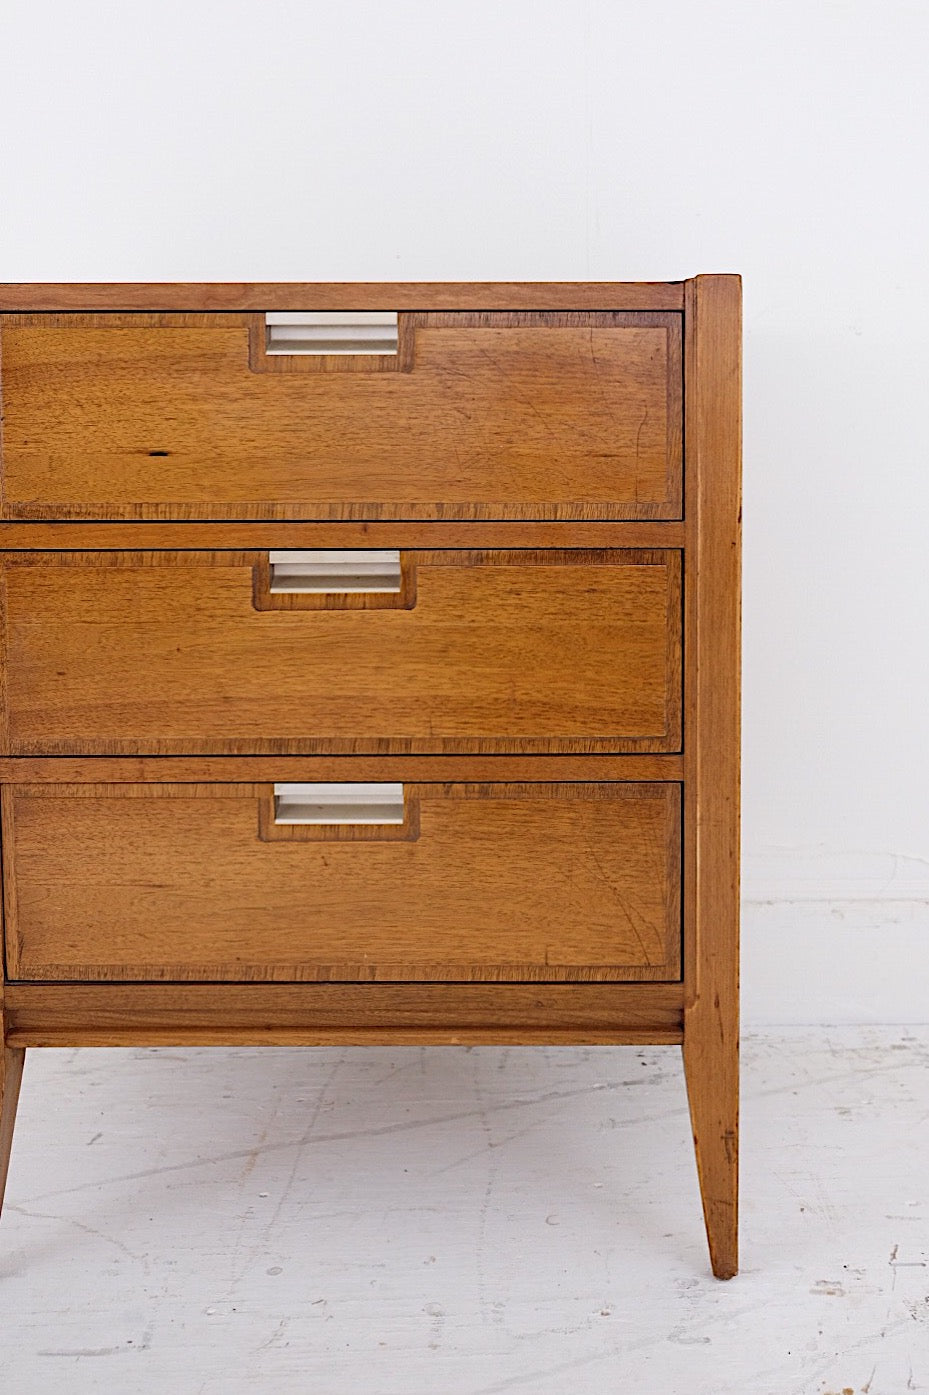 Basic Witz Bachelors Small Chest Three Drawers Mid Century Modern Steel Metal Handles